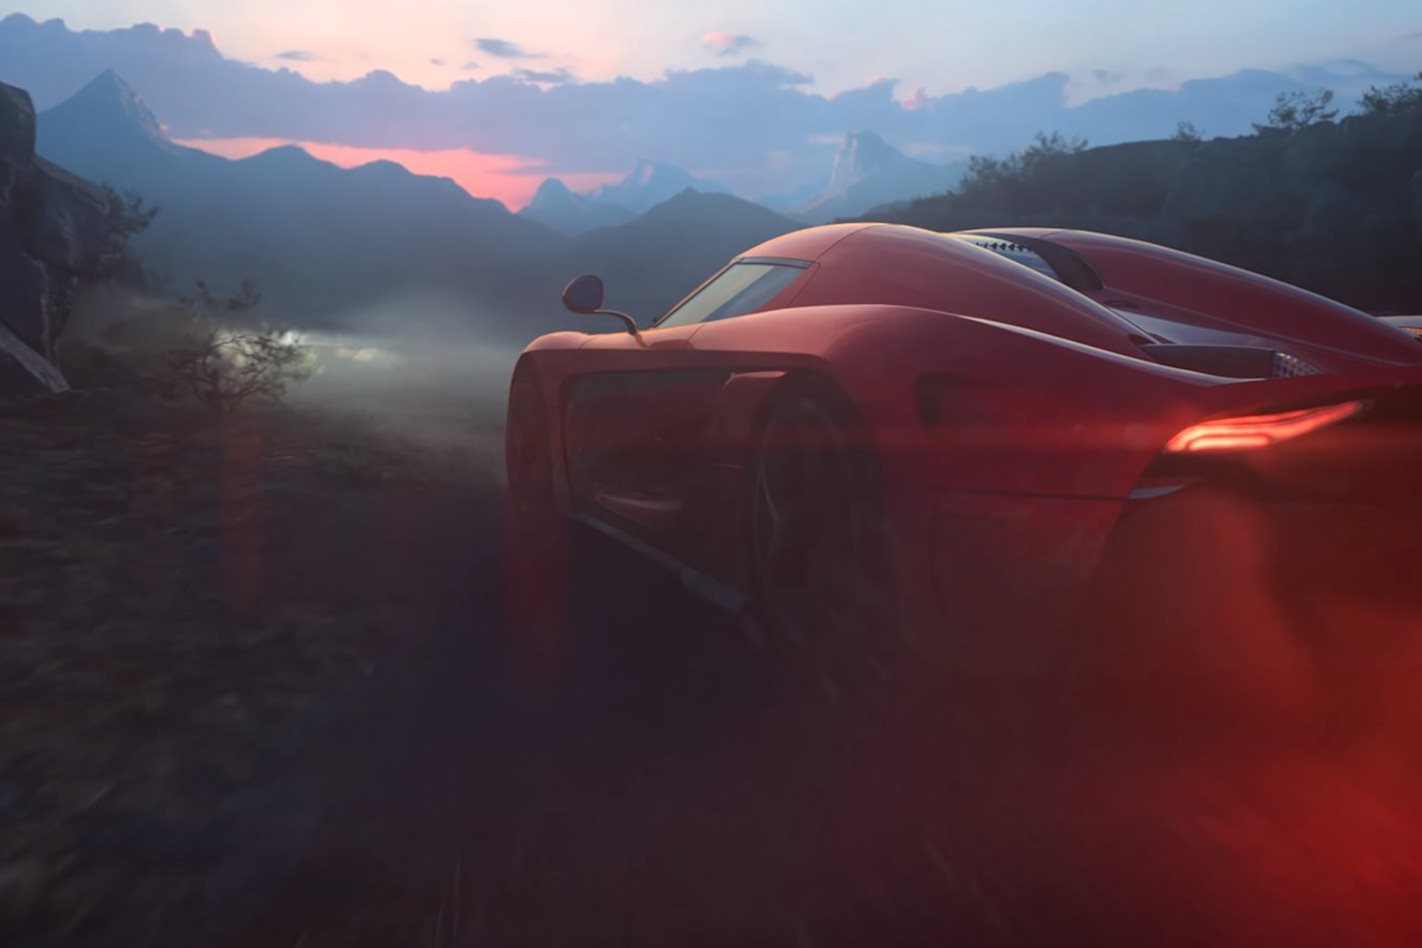 Forza Motorsport 8 to be backwards compatible with existing Xbox One hardware